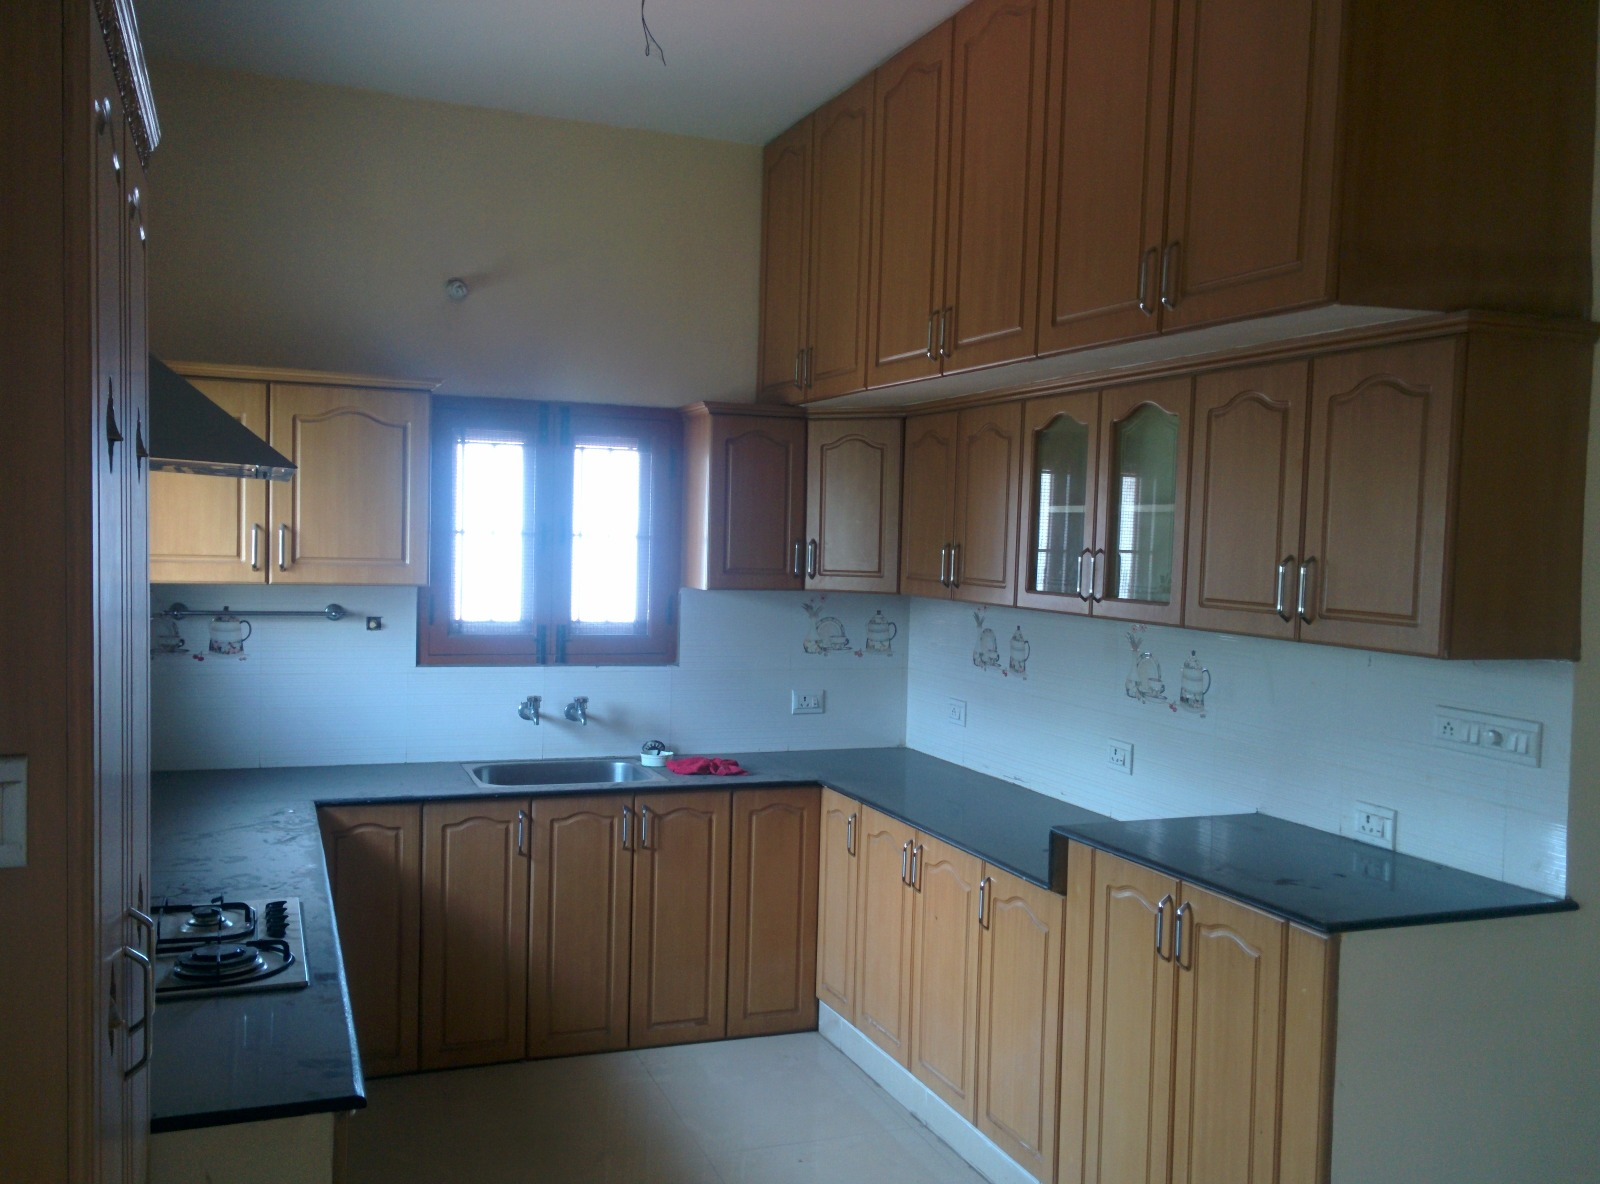 3 bhk 1st floor for rent west mambalam chennai for Single bedroom flats for rent in chennai